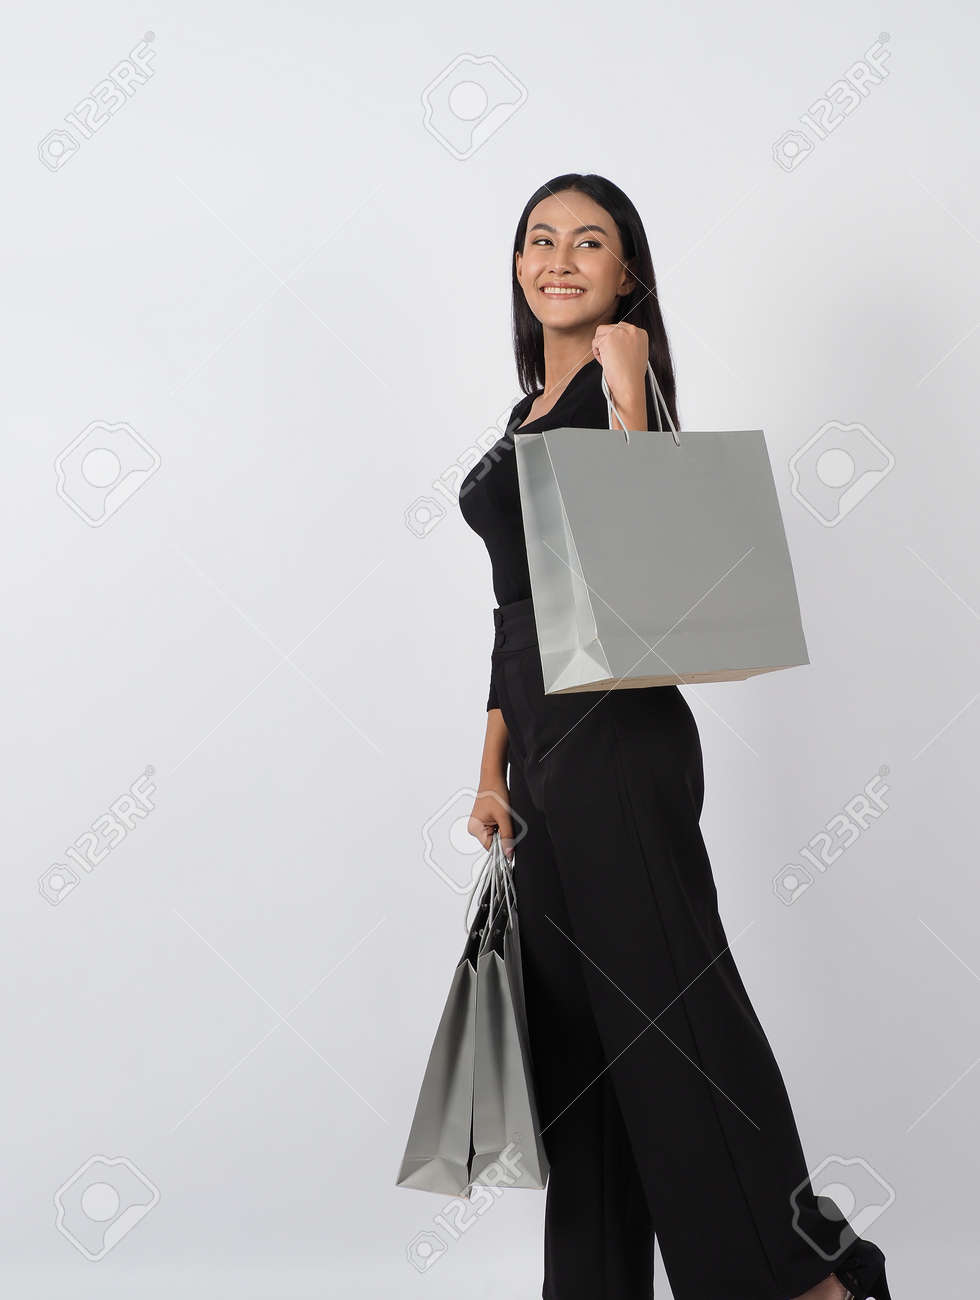 Love Shopping concept. Beautiful Asian woman carrying gray color bags shopping online. isolated on white studio background. online shopping bag. black hair woman love shopping online. Online purchase - 168300577